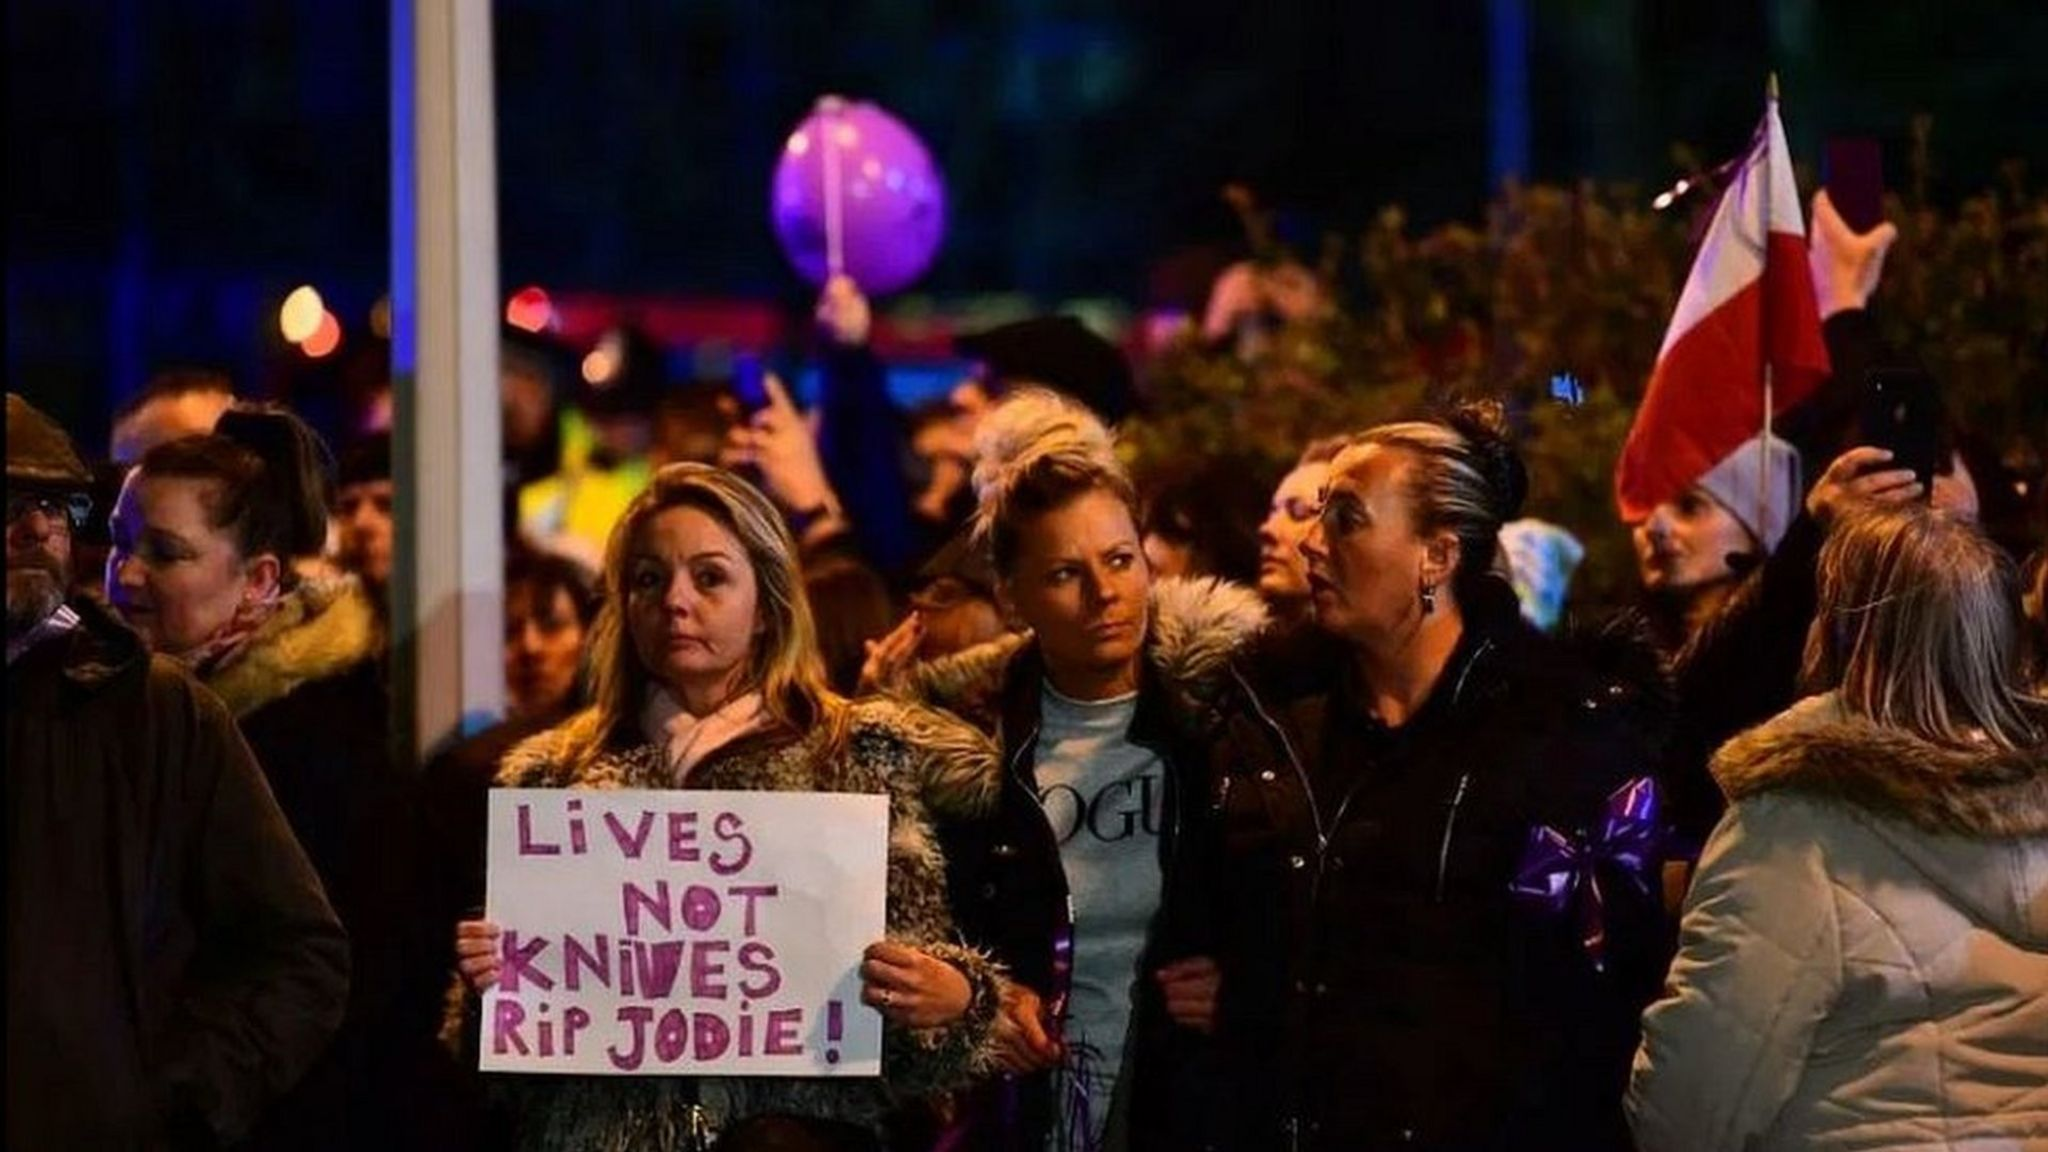 March for Jodie